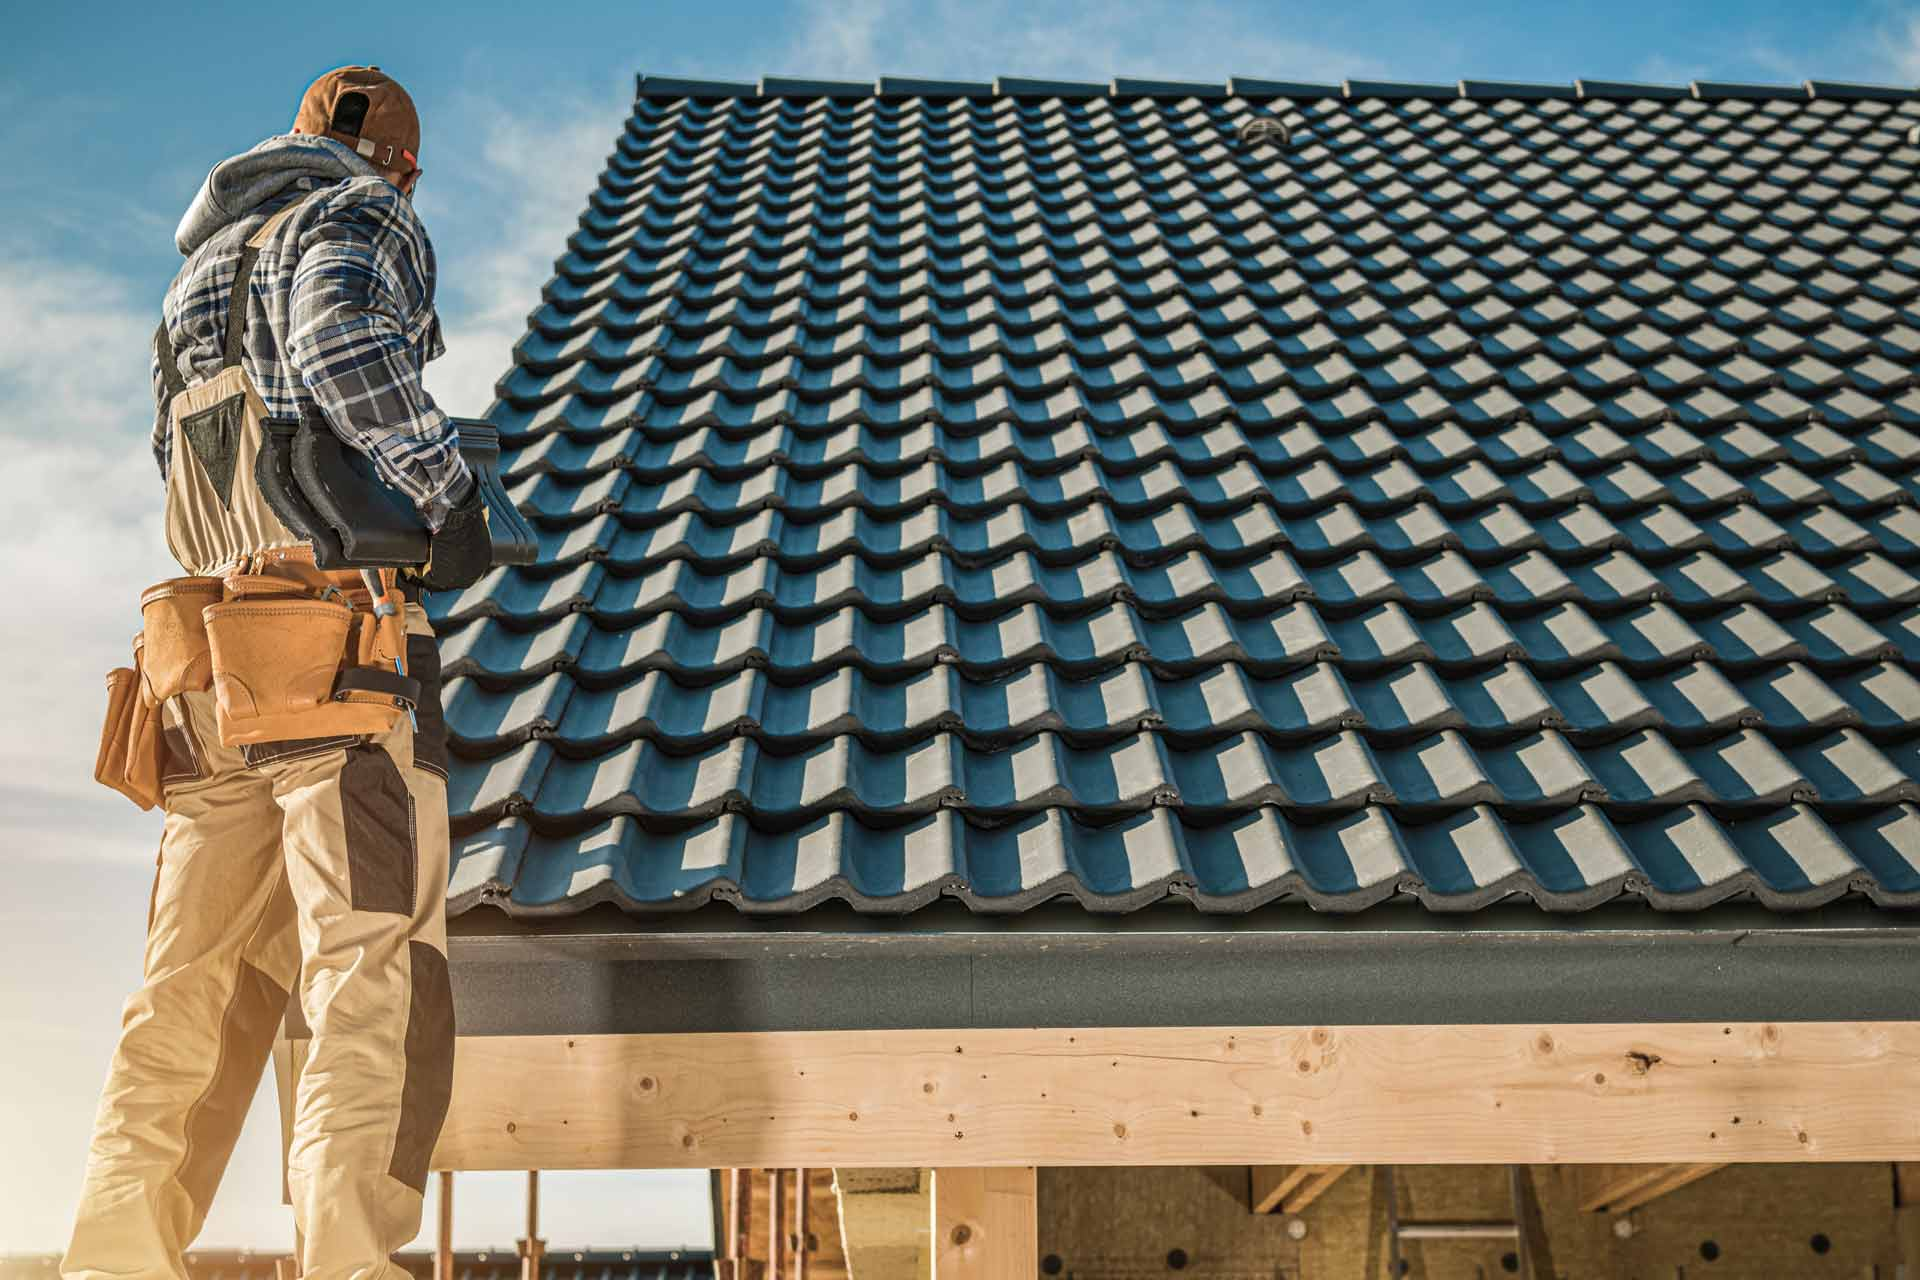 What Should I Look For When Hiring a Roofing Company?